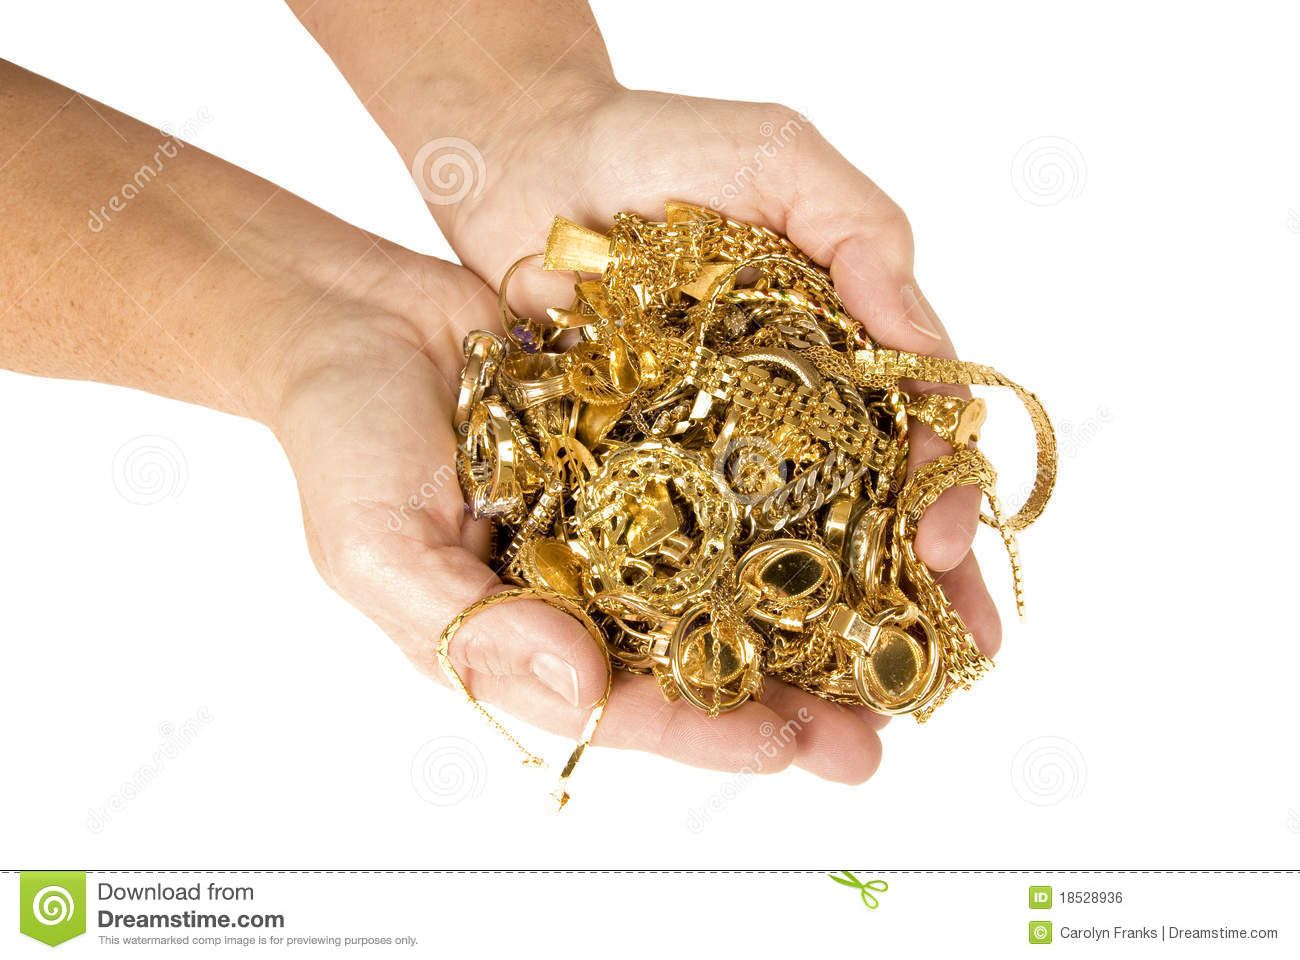 14++ How to sell your gold jewelry without getting ripped off info